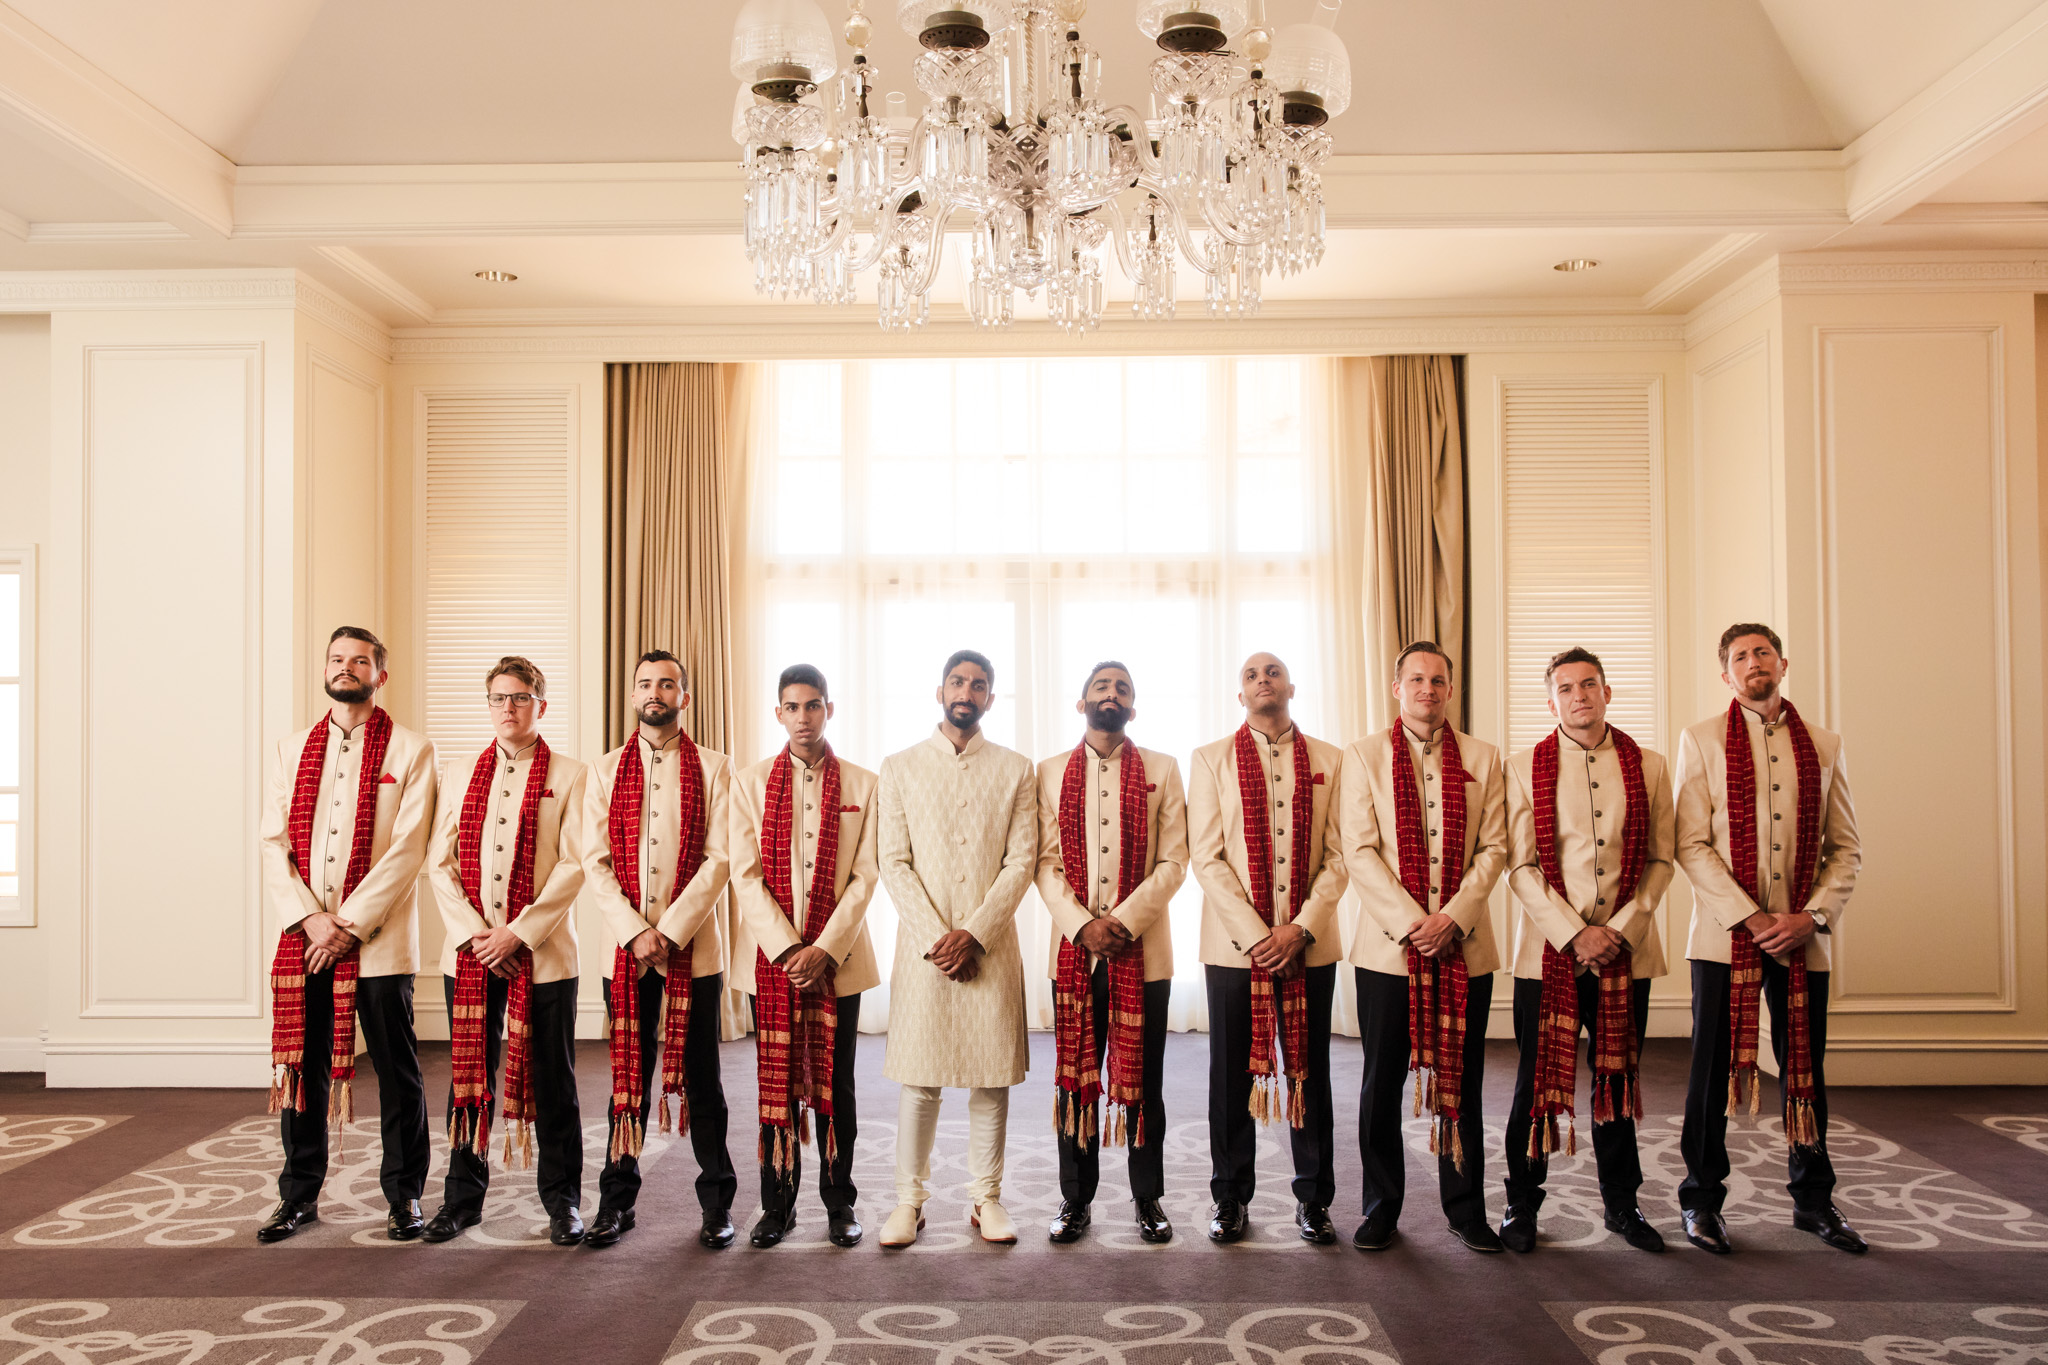 006 ritz carlton laguna niguel indian groomsmen wedding photography